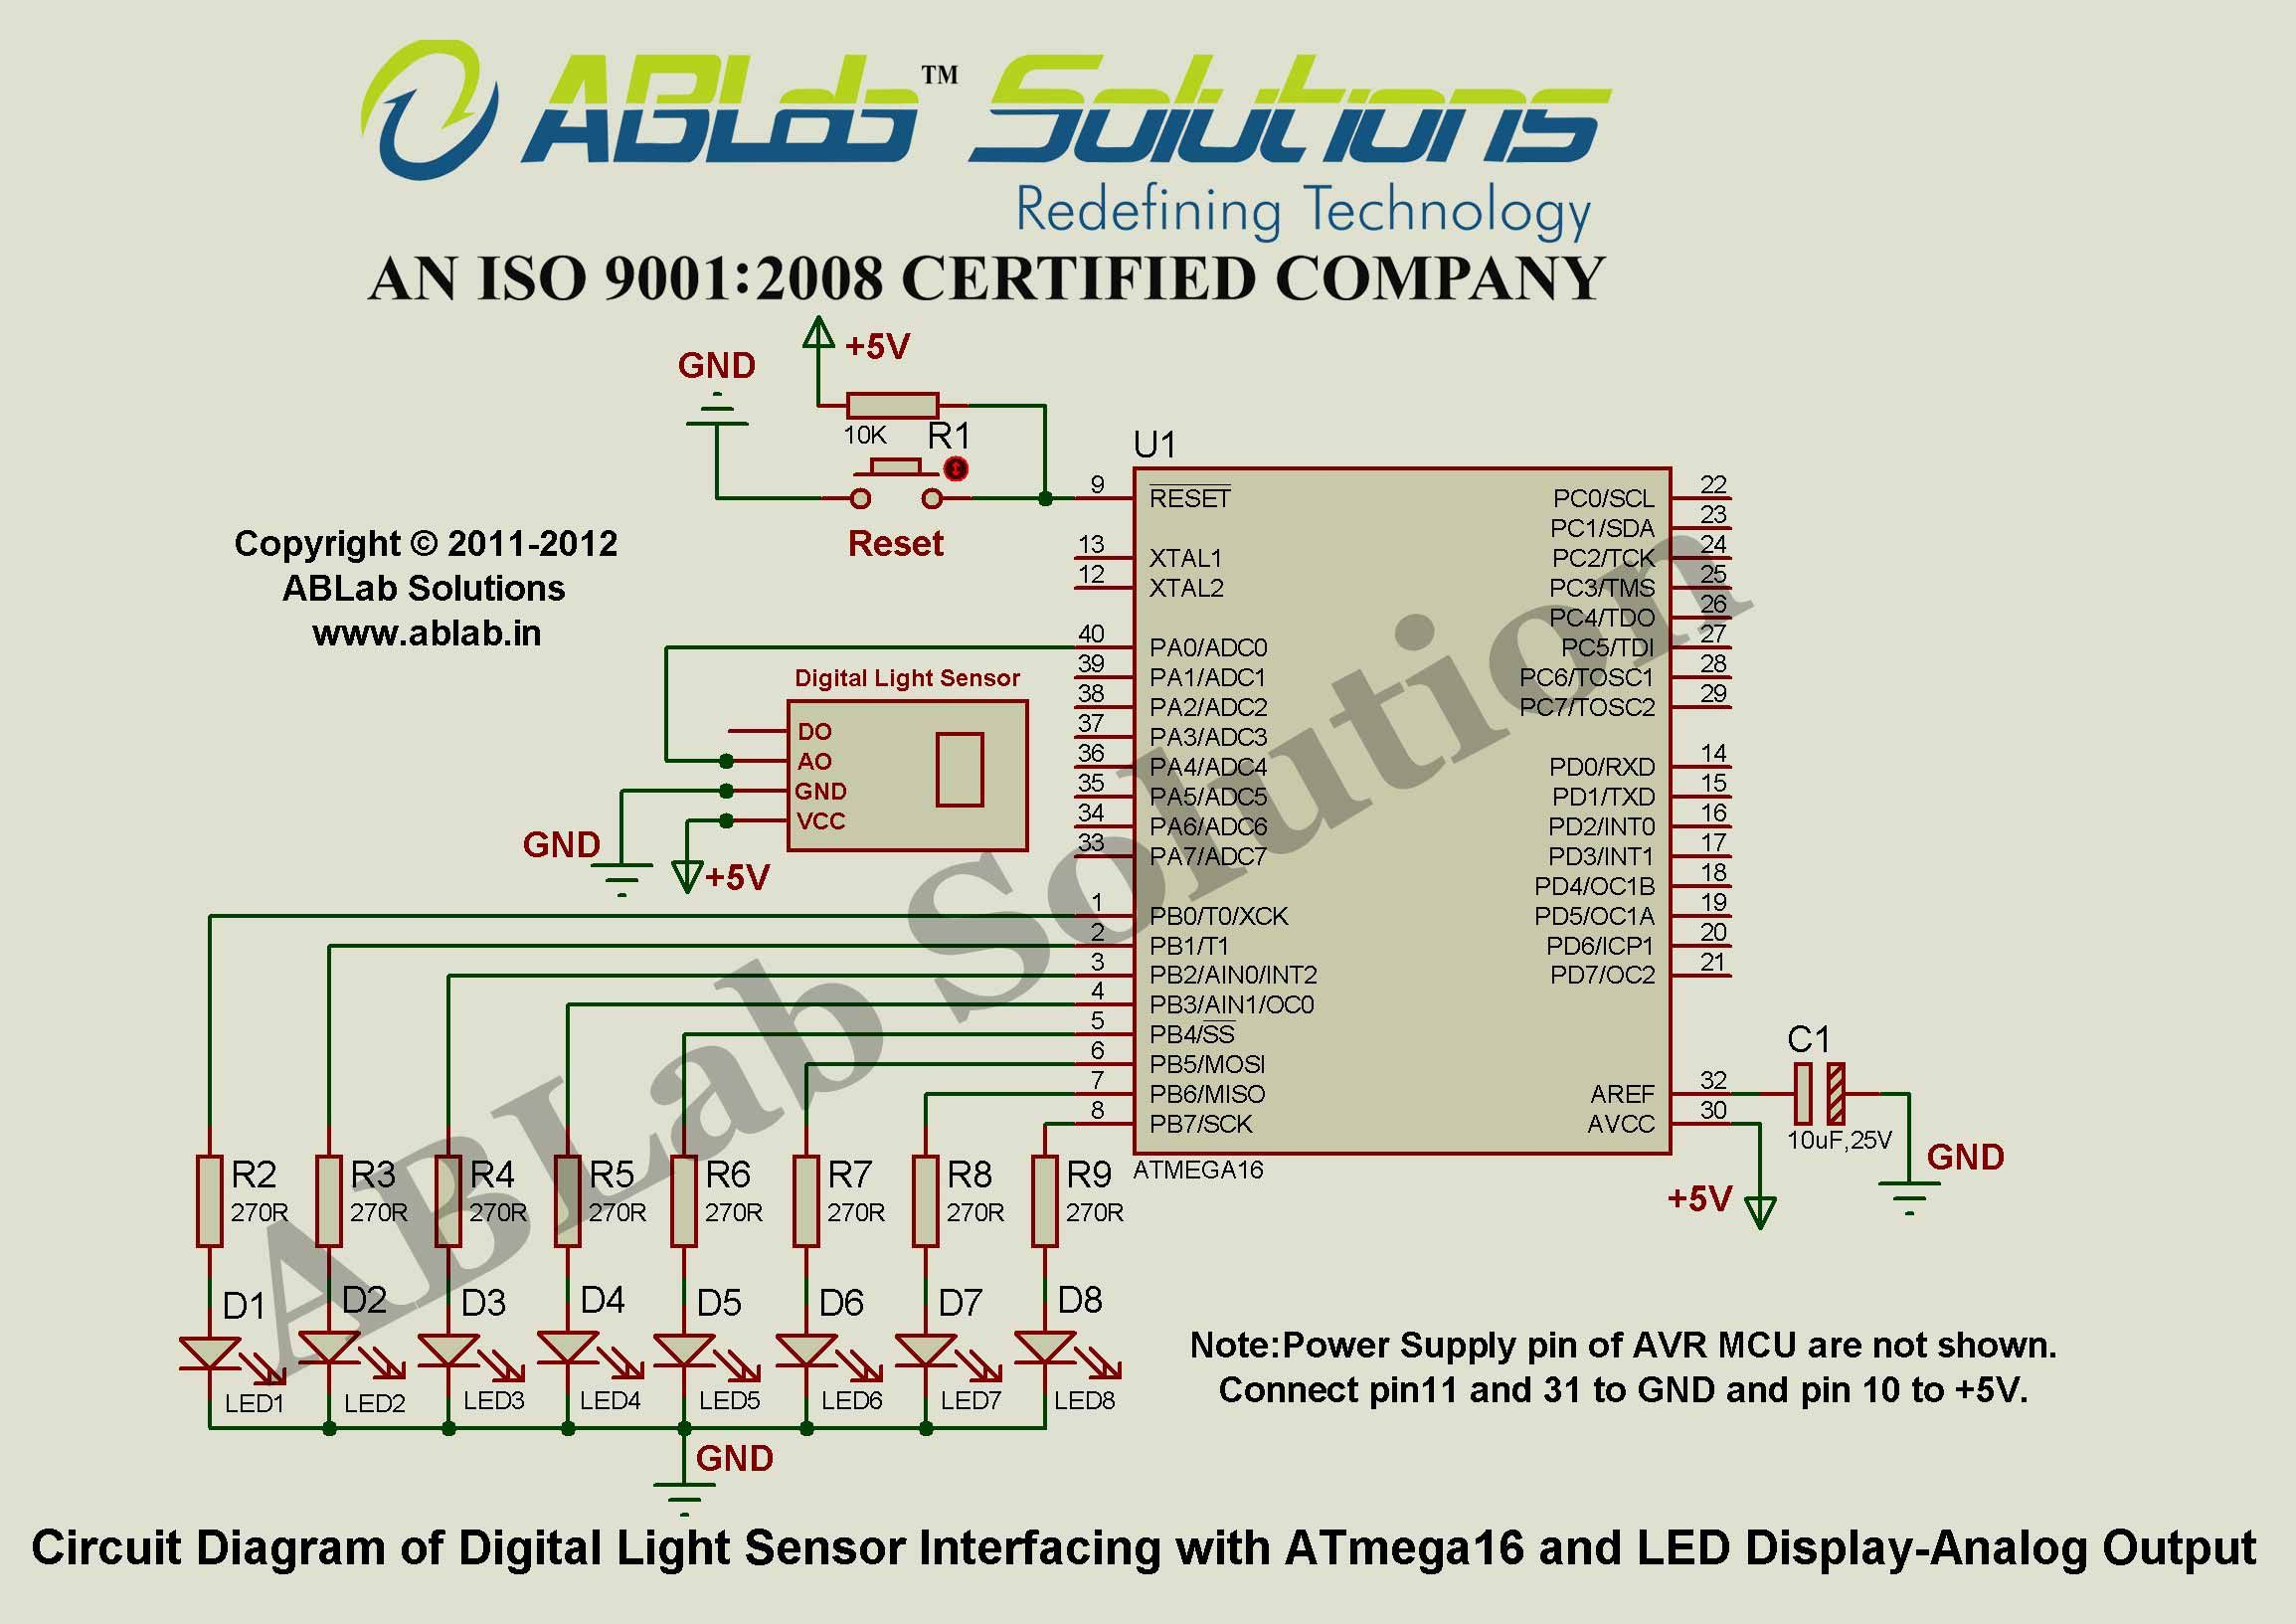 digital light sensor interfacing with avr atmega16 microcontroller and led display analog output circuit diagram ablab solutions [ 2309 x 1633 Pixel ]